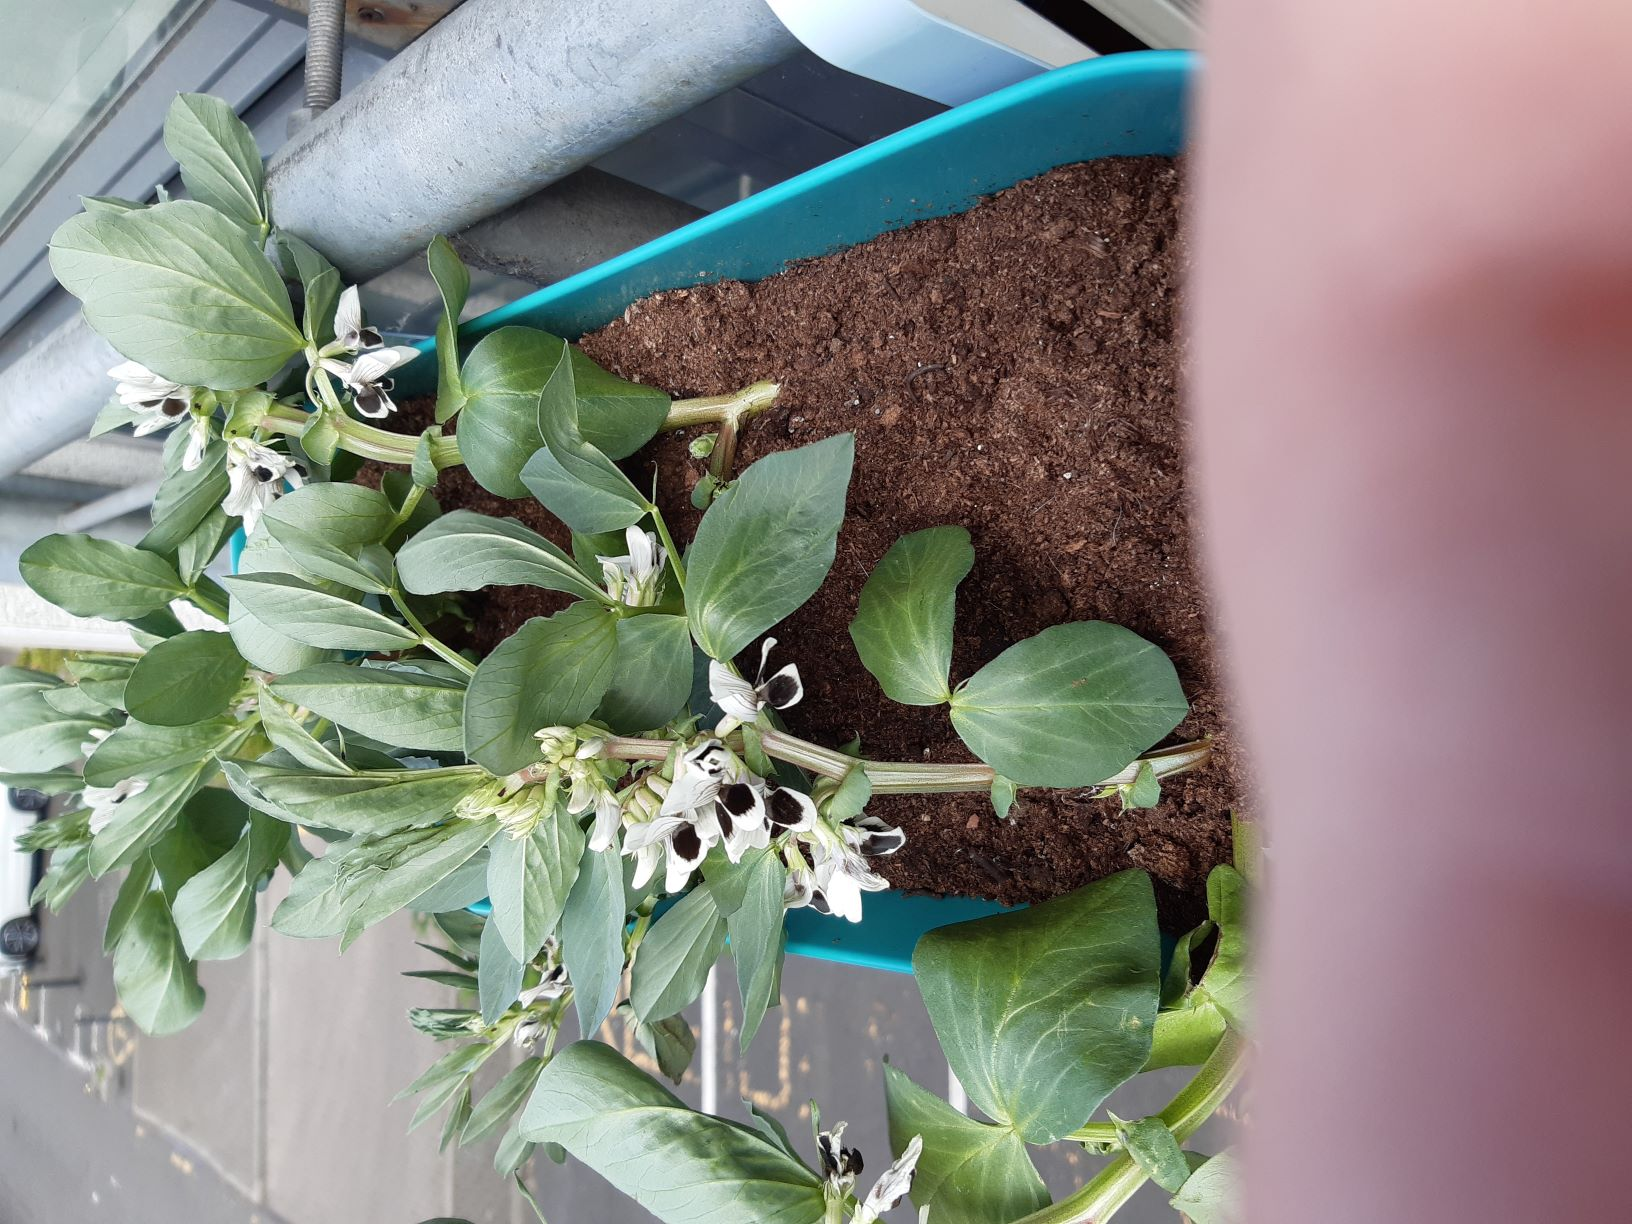 The image shows a turquoise window box attached to a sturdy railing over a parking area. The brown soil has several dwarf broad bean plants with white and black flowers.